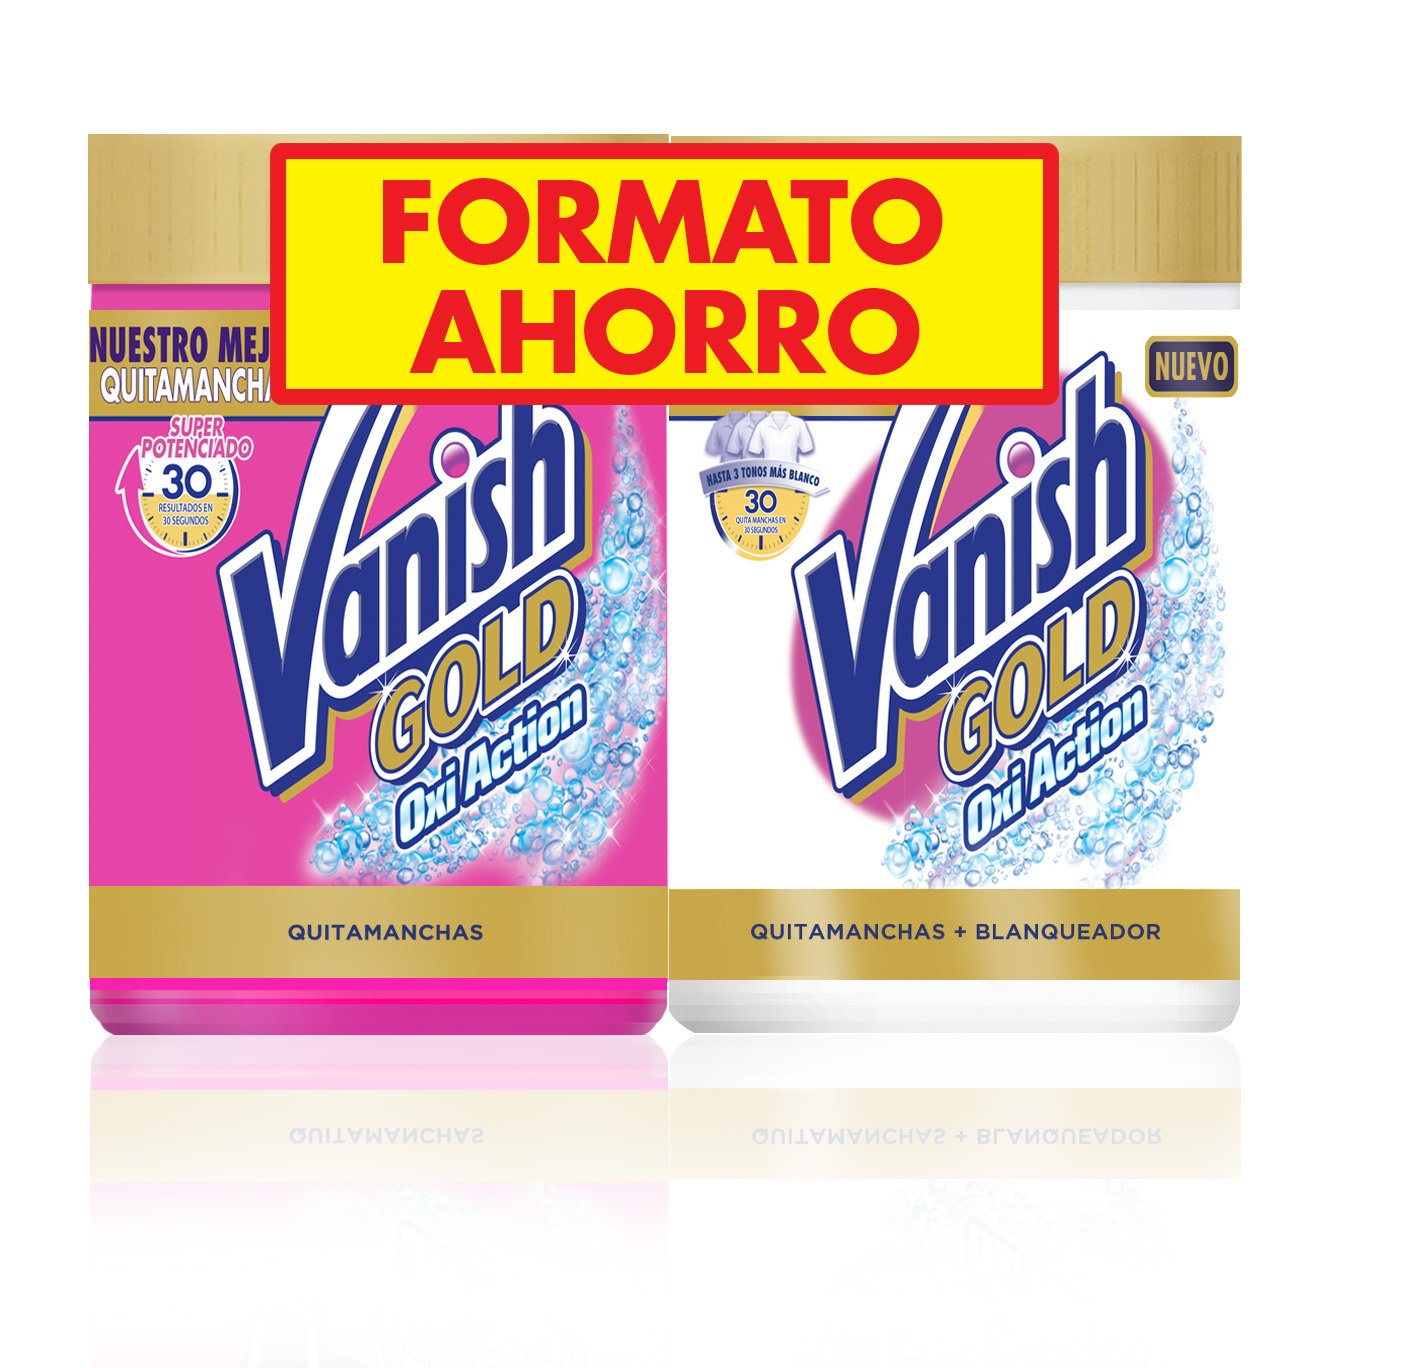 TALLA 2 x 470 gr (940 gr). Vanish Gold Oxi Action White Quitamanchas Polvo - Pack de 2 x 470 gr - Total: 940 g